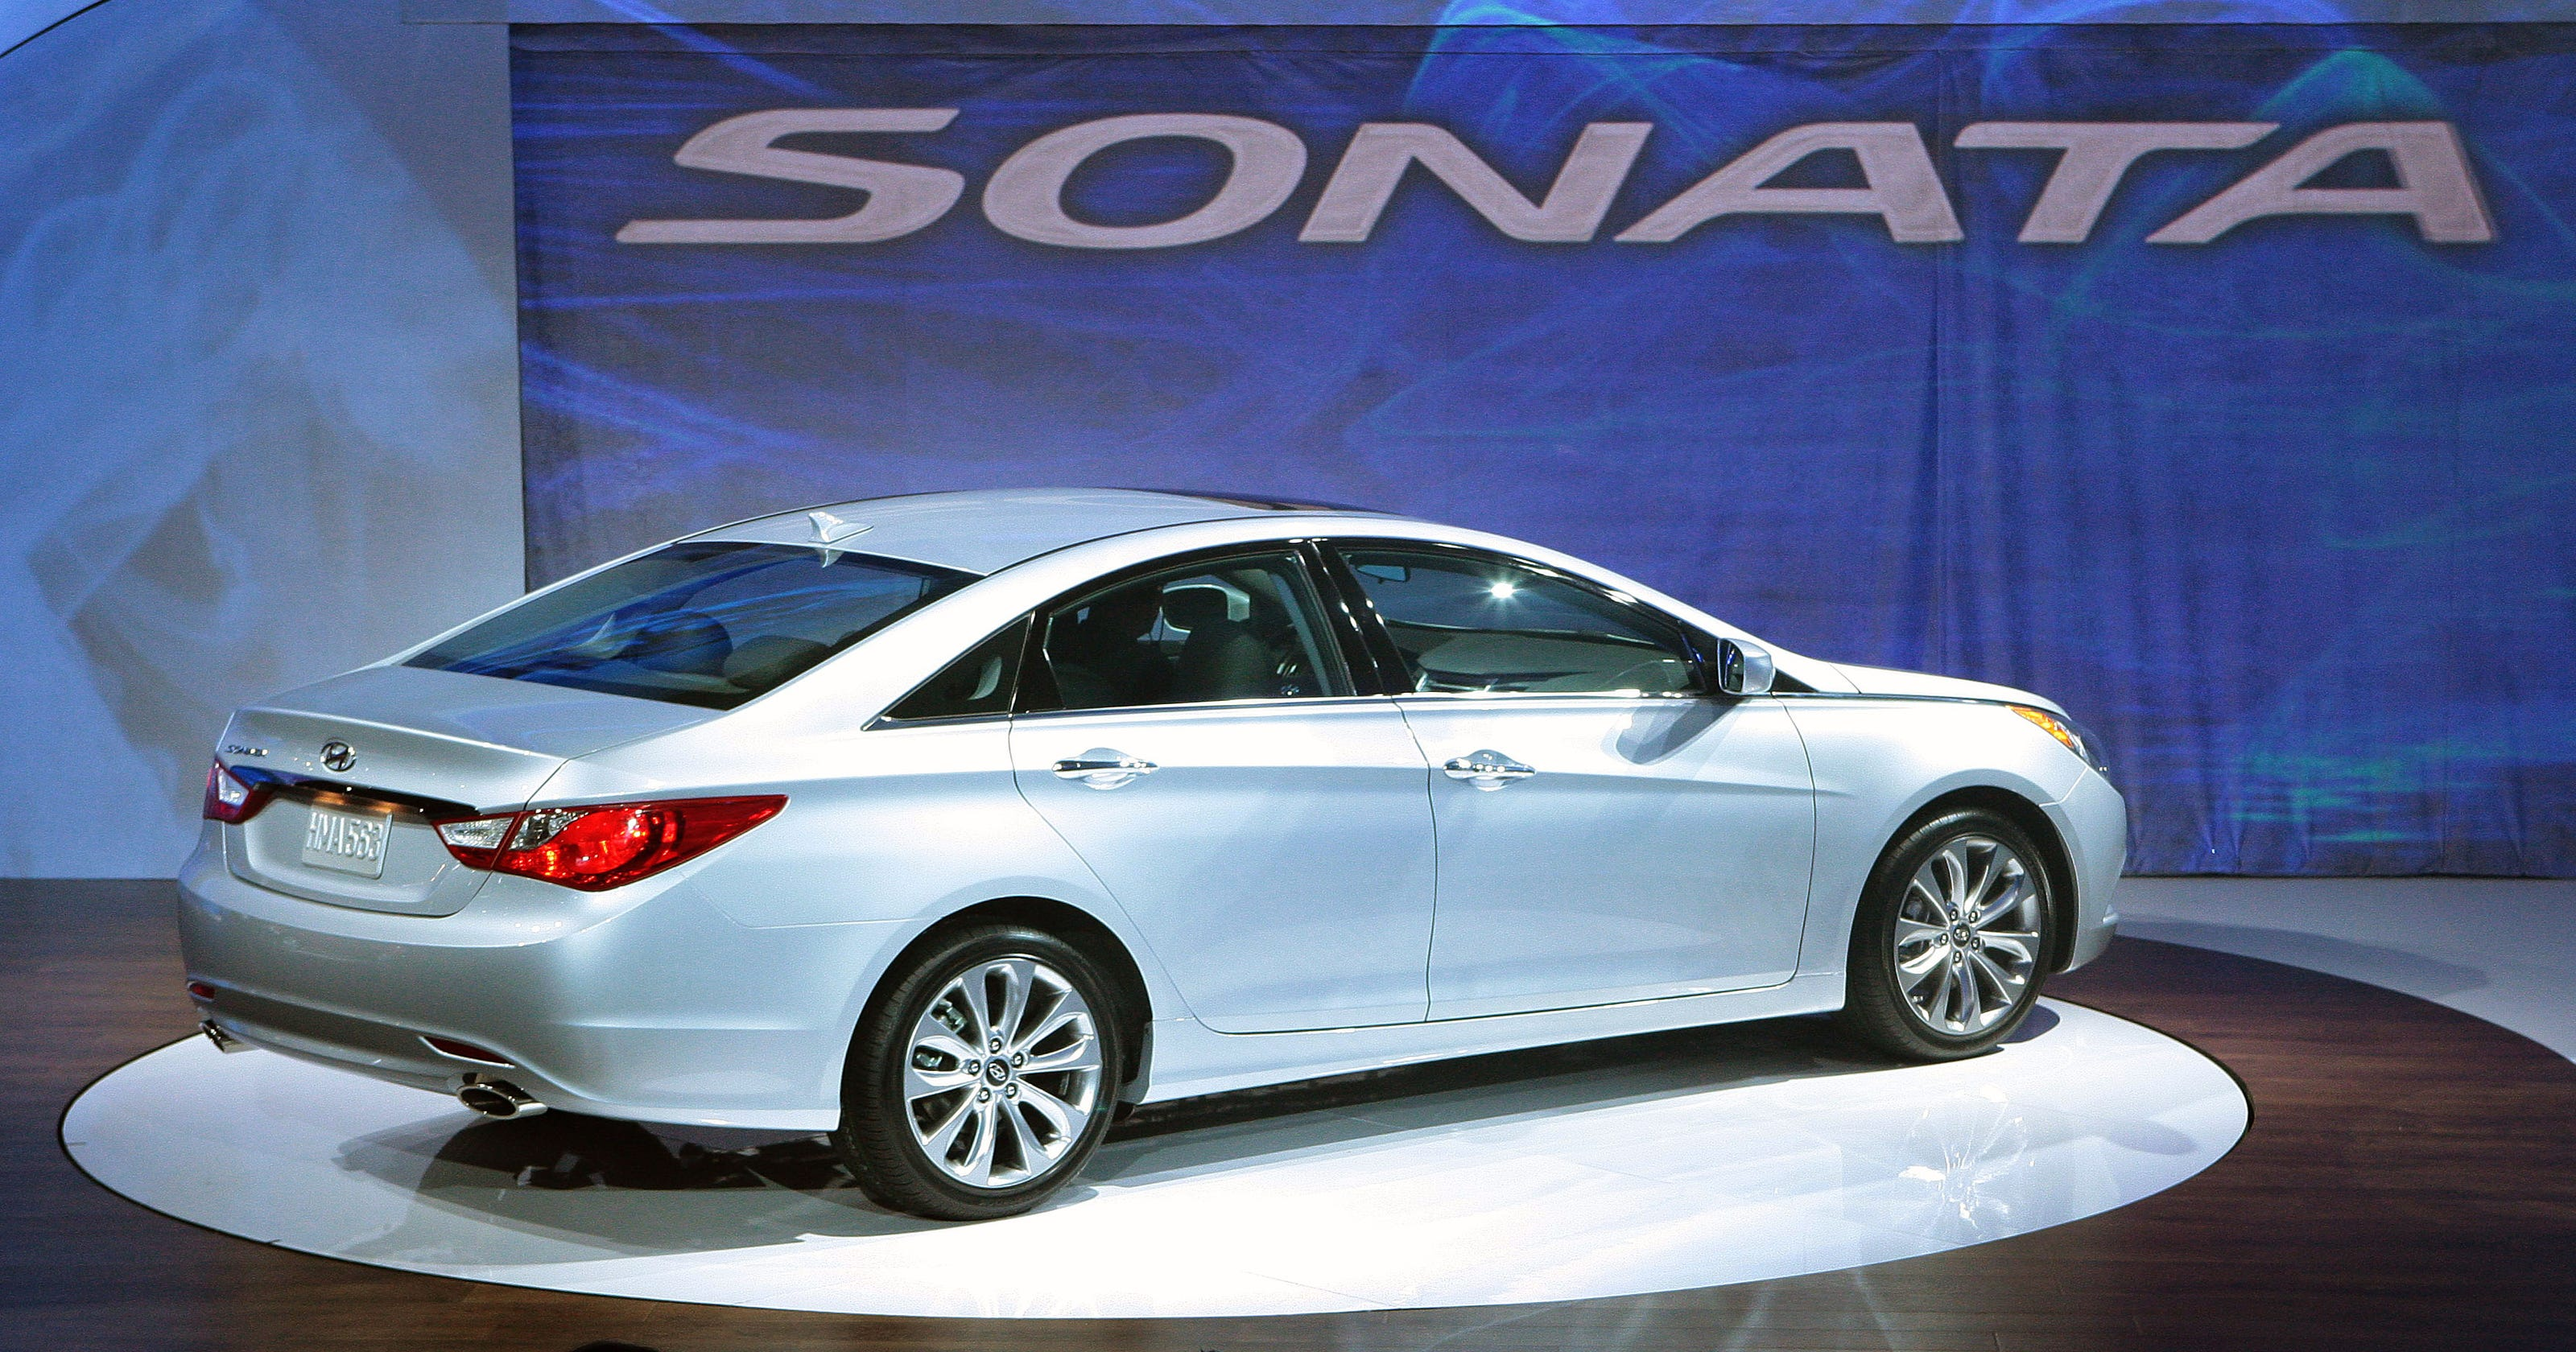 recommended oil weight for 2013 hyundai sonata